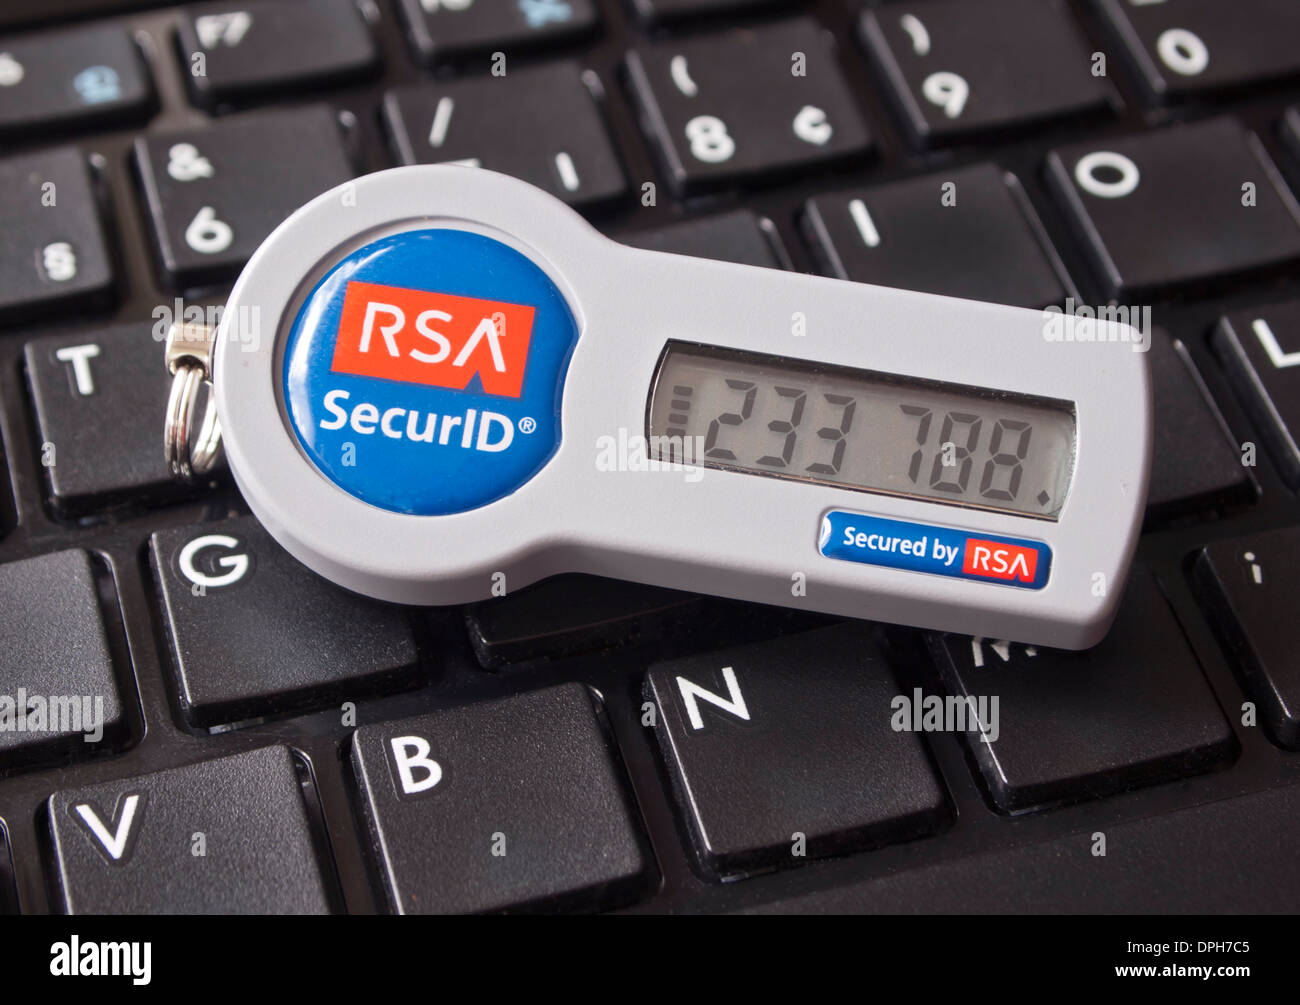 An internet security token of the US based company RSA Security Inc. on June 24, 2011. - Stock Image